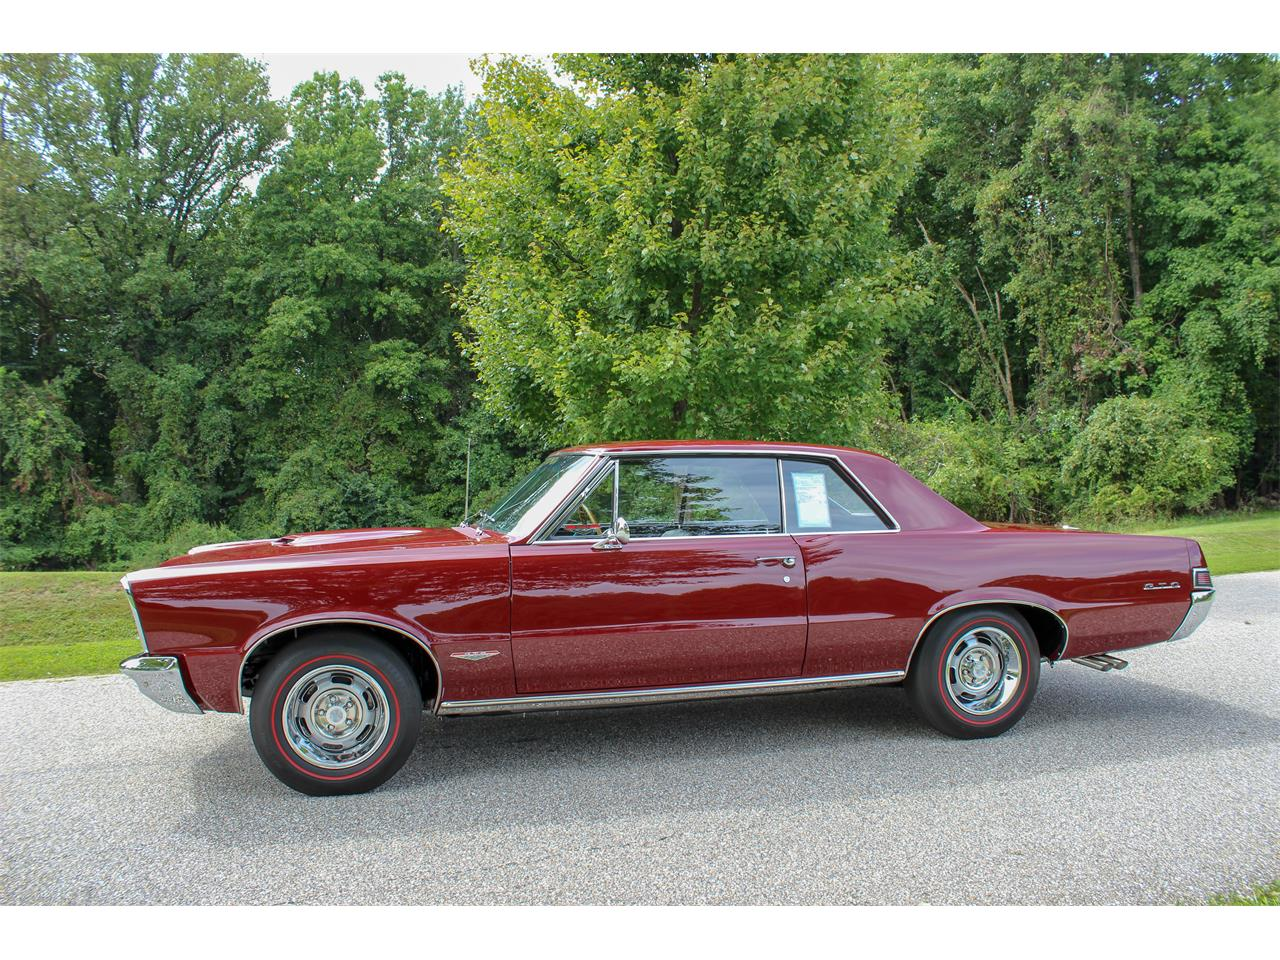 Large Picture of '65 Pontiac GTO located in Crofton Maryland - $68,000.00 Offered by a Private Seller - R2KD